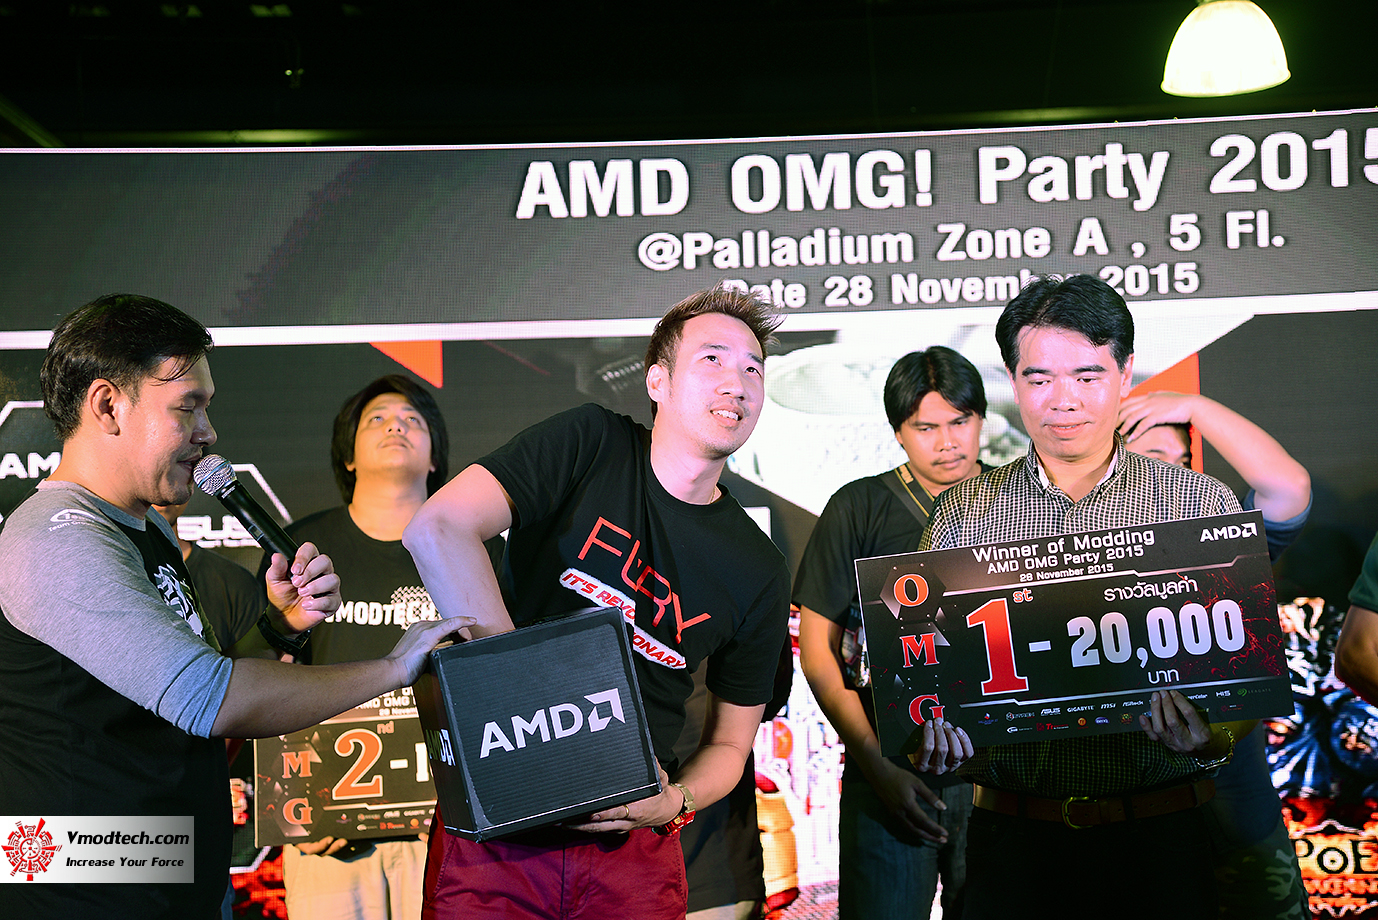 dsc 8107 AMD OMG! Party 2015 (AMD Overclock Modding Gaming Party 2015)